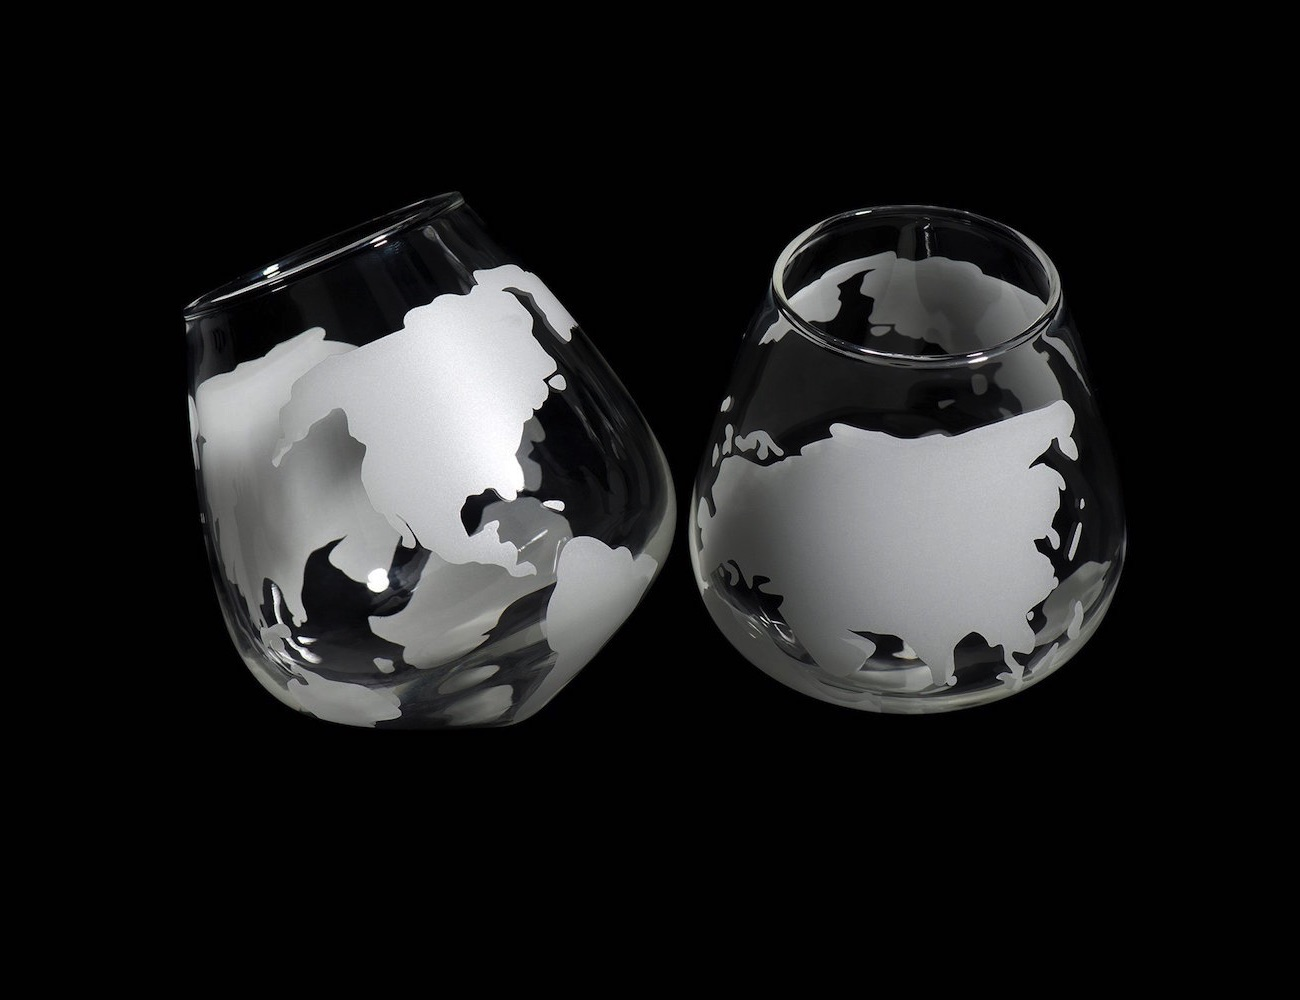 Etched Spinning Globe Whiskey Glasses